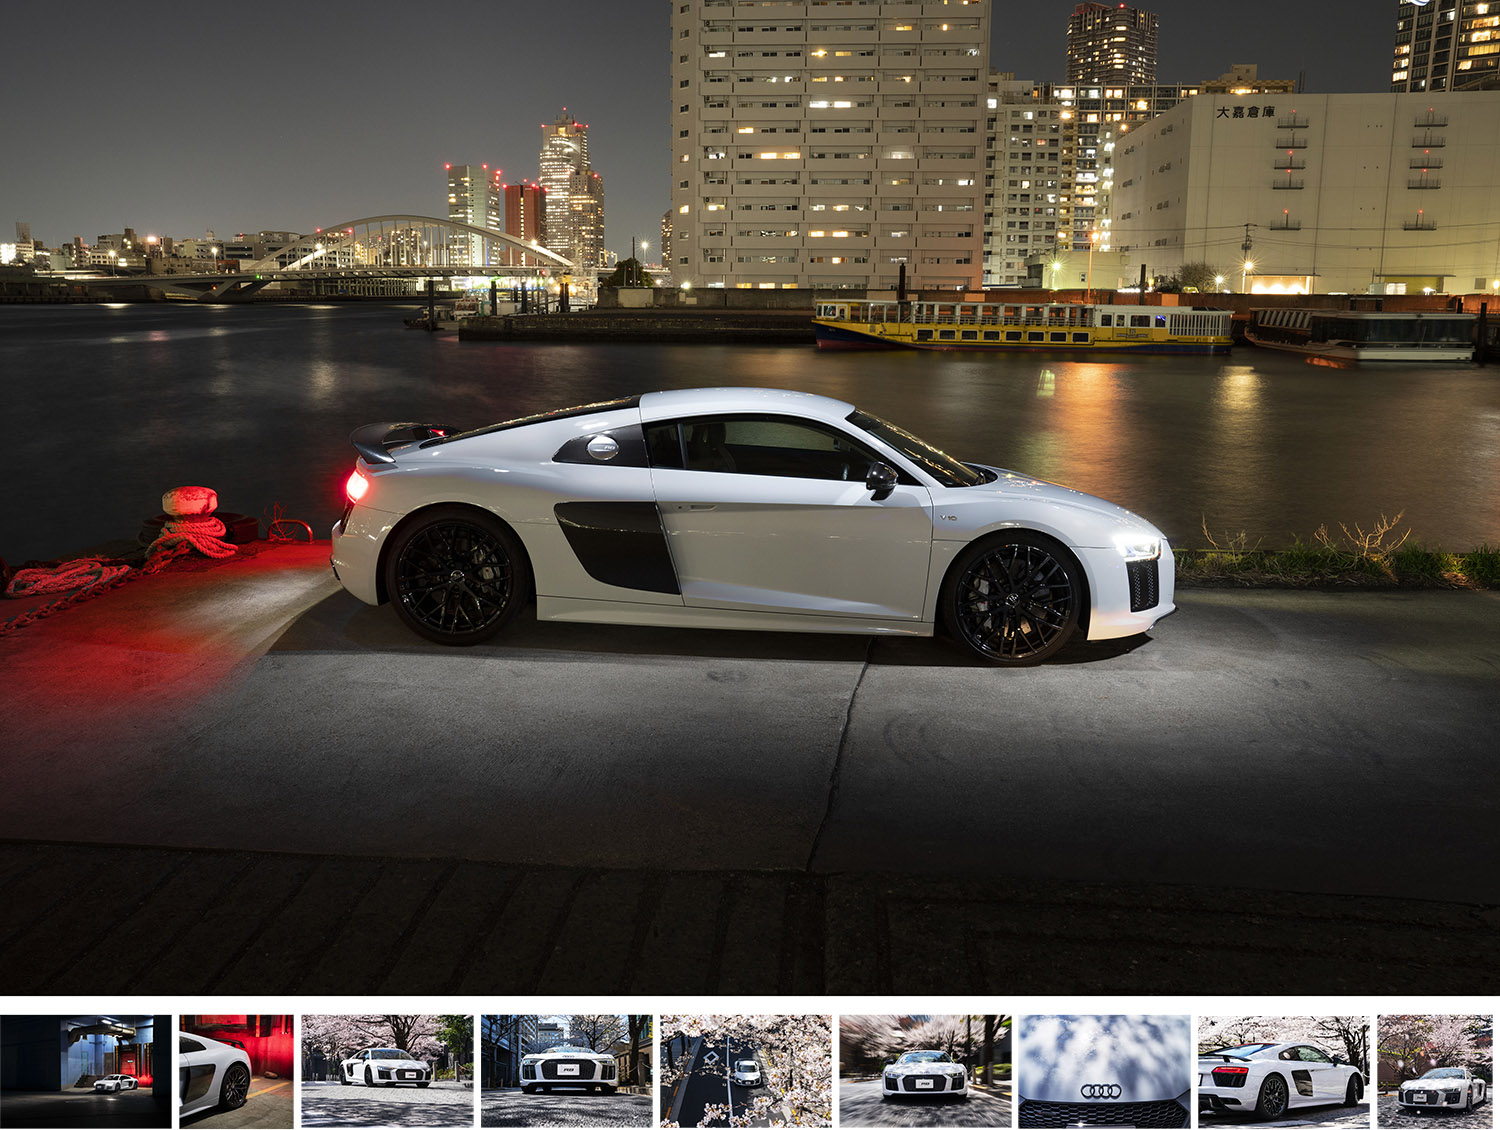 Audi R8 - Agency: Rise & Shine JapanMedia: StillsUsage: SocialWorking with Rise & Shine Japan I shot imagery for social media of the Audi R8. We photographed at night in the packing district of Tokyo as well as during the day in the cherry blossom avenues of Roppongi itchome..